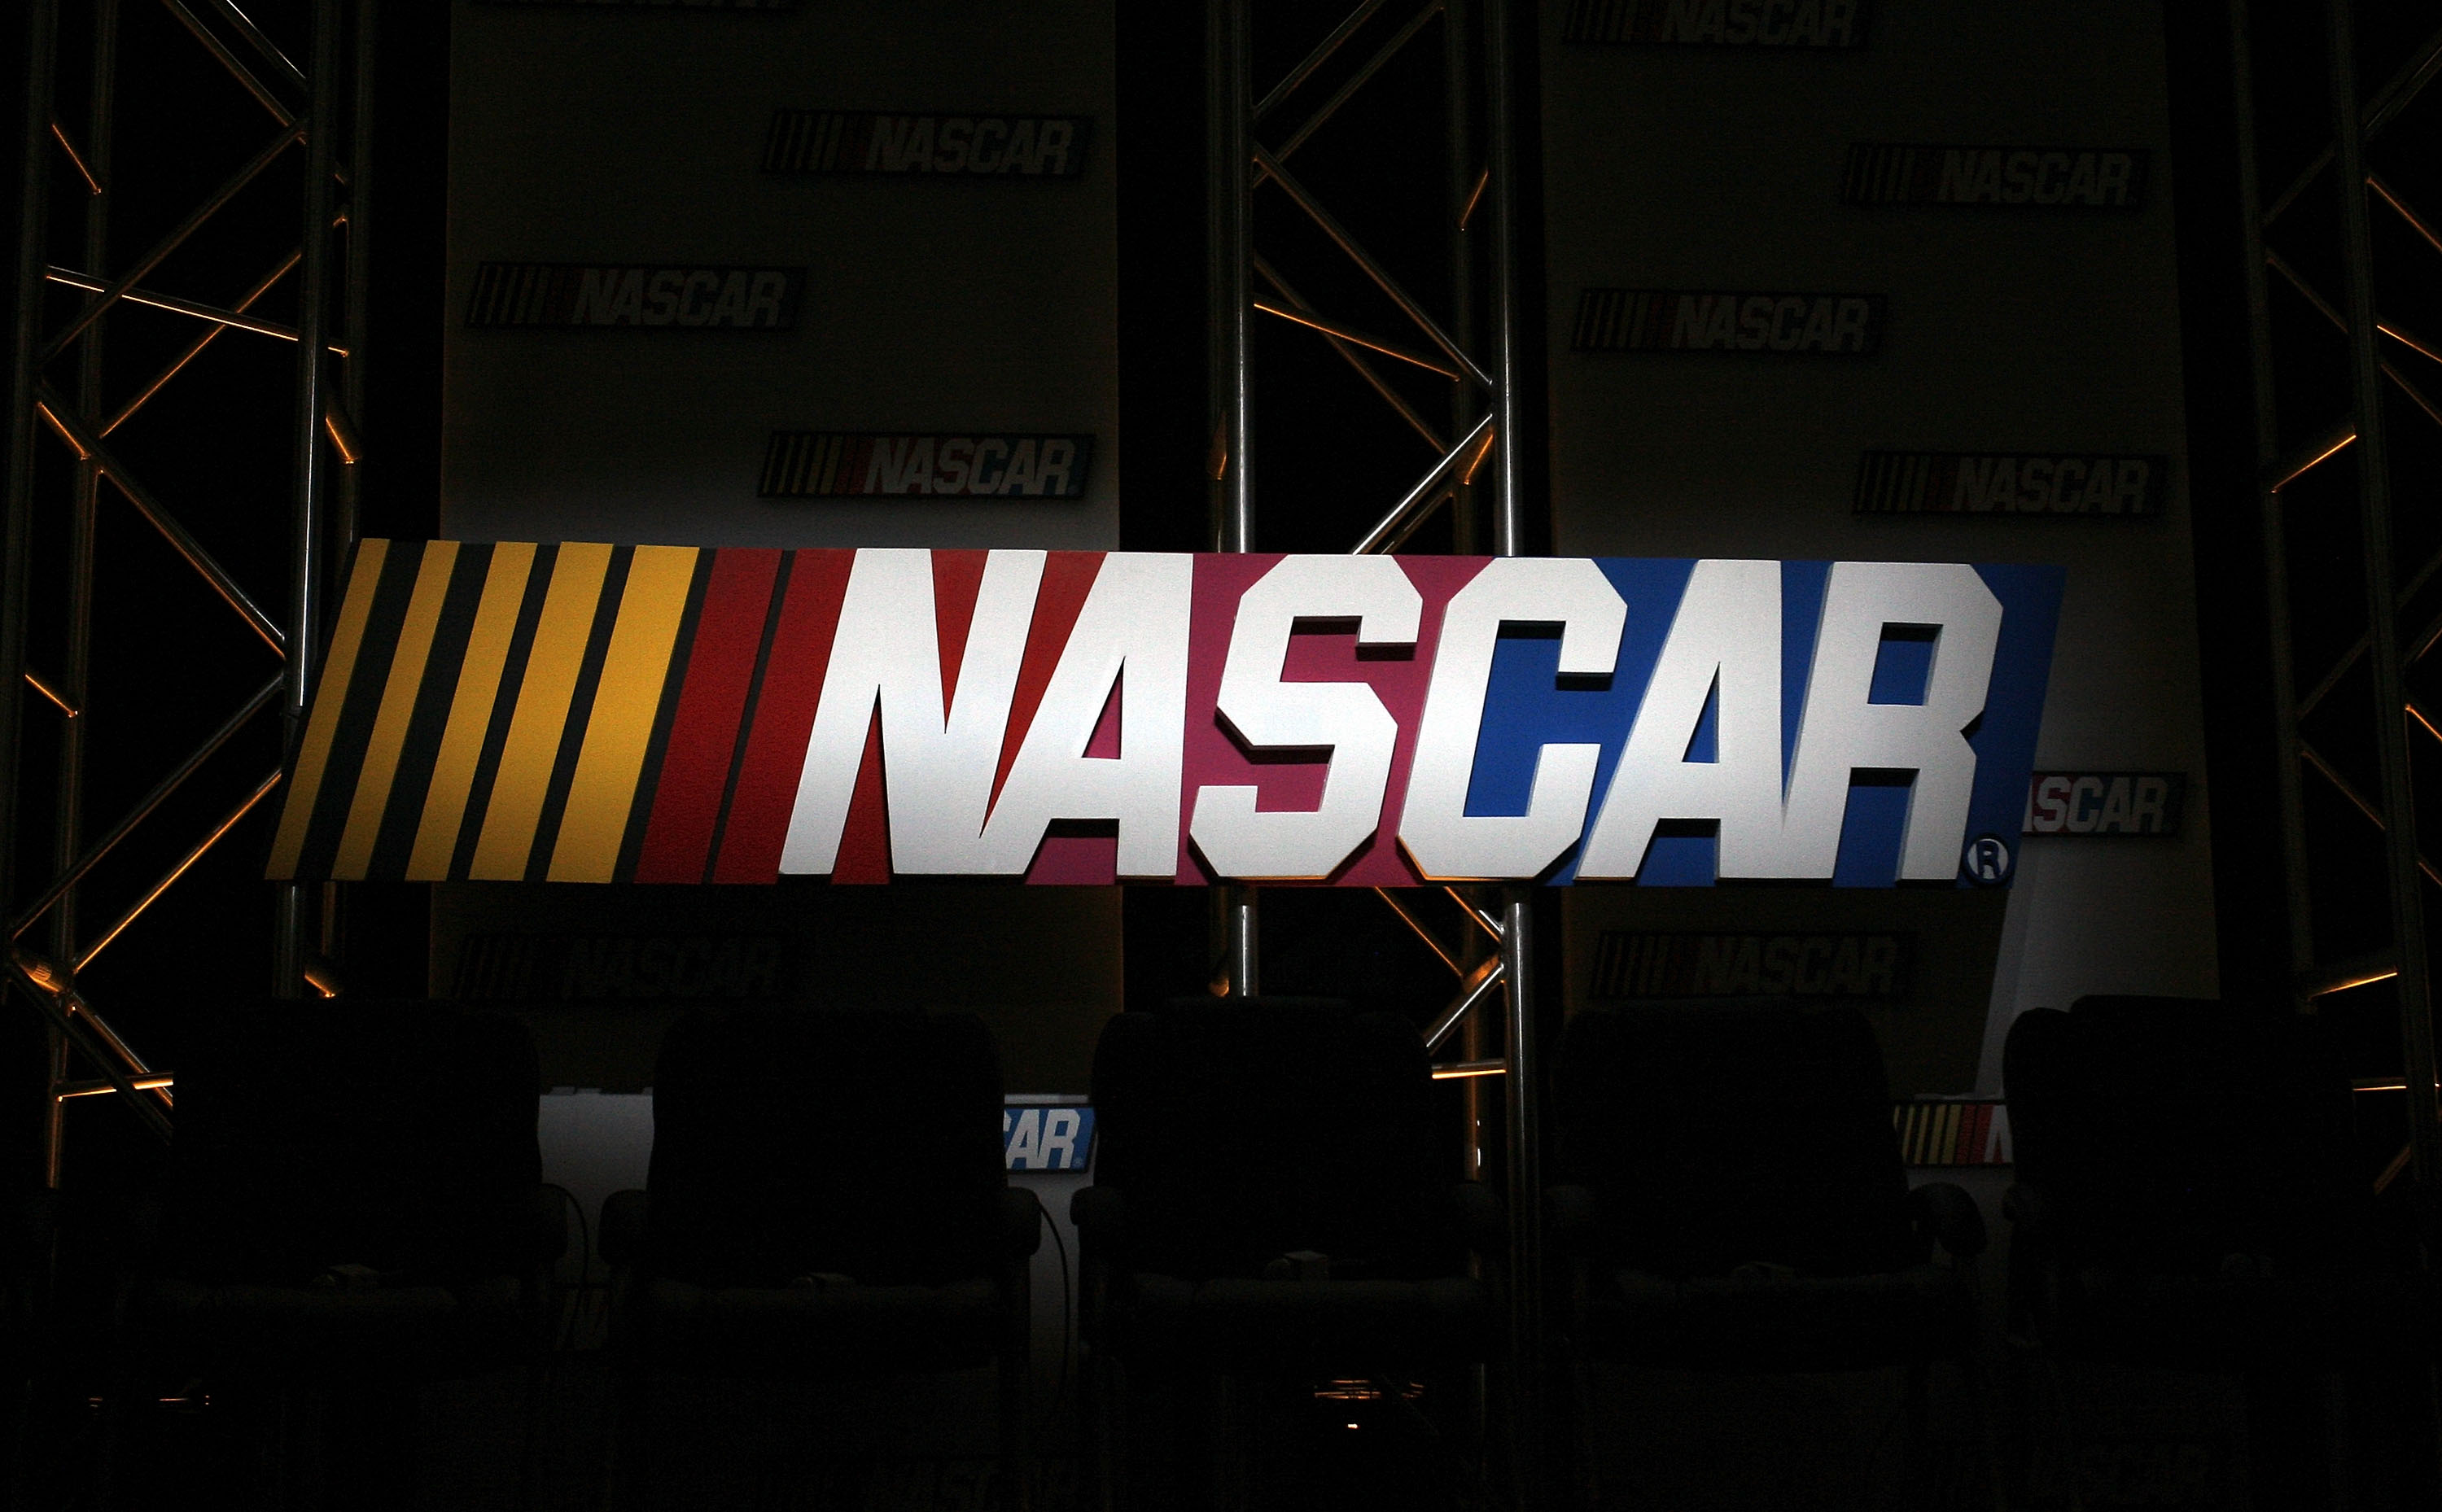 A general view of the NASCAR logo displayed during the NASCAR Sprint Media Tour hosted by Lowe's Motor Speedway at the NASCAR Research and Development Center January 22, 2009 in Concord, North Carolina.